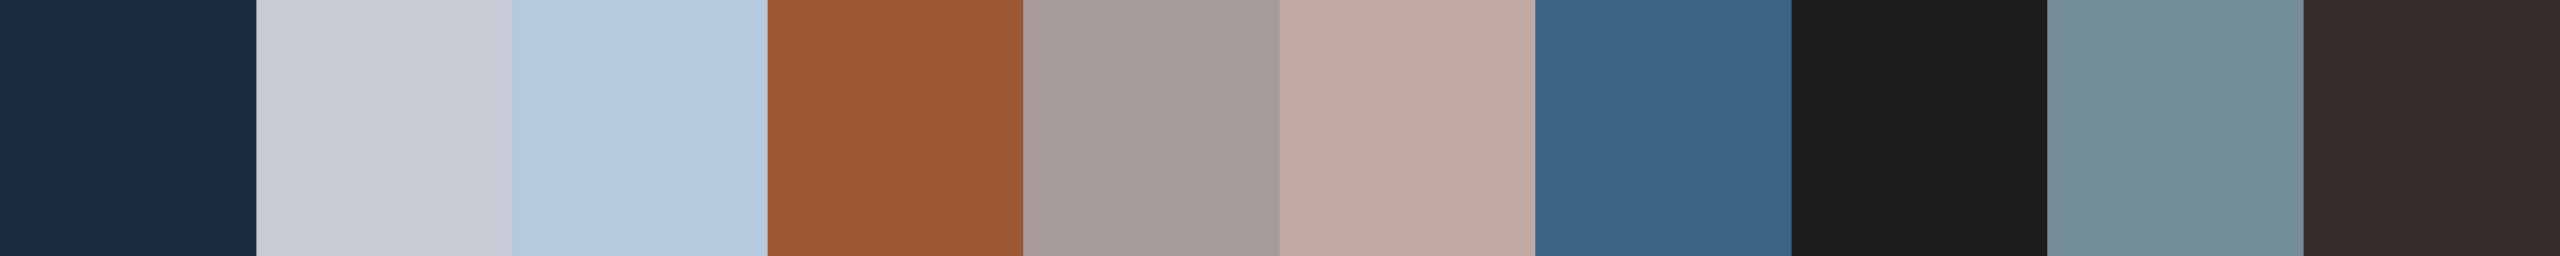 505 Zammiena Color Palette